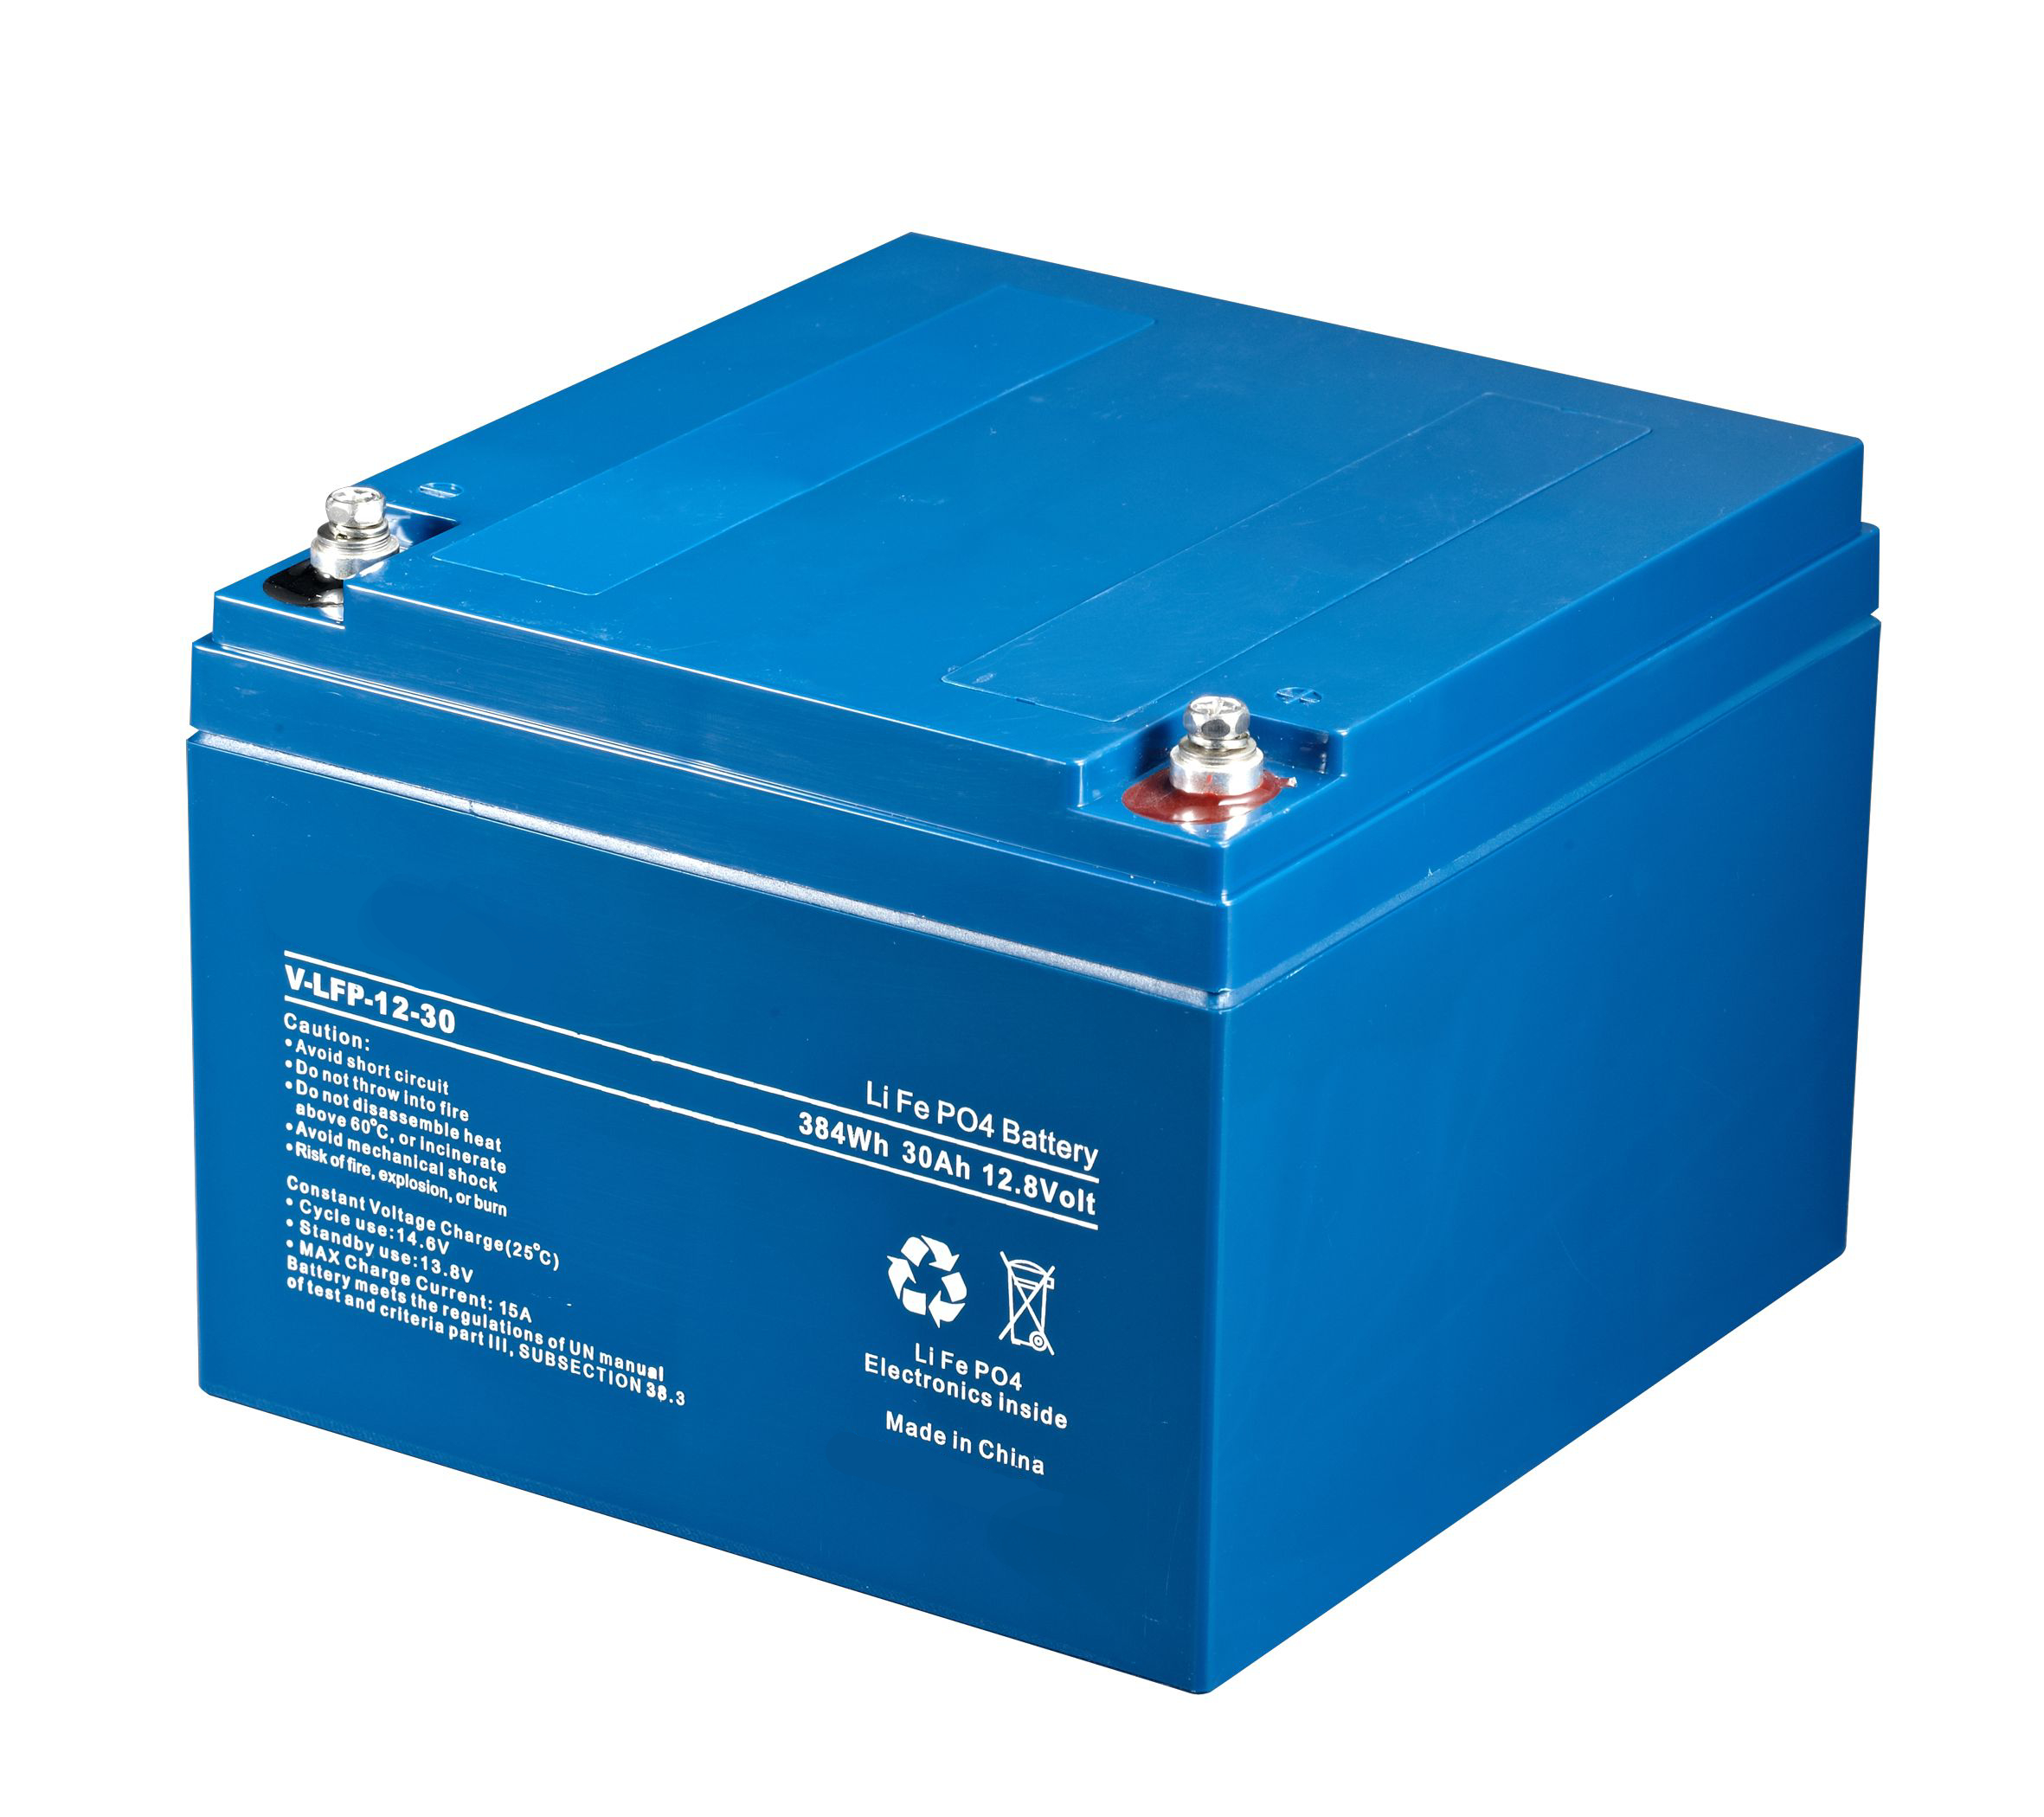 Batterie al litio LiFePO4 serie LFP Enerpower 12v 30ah